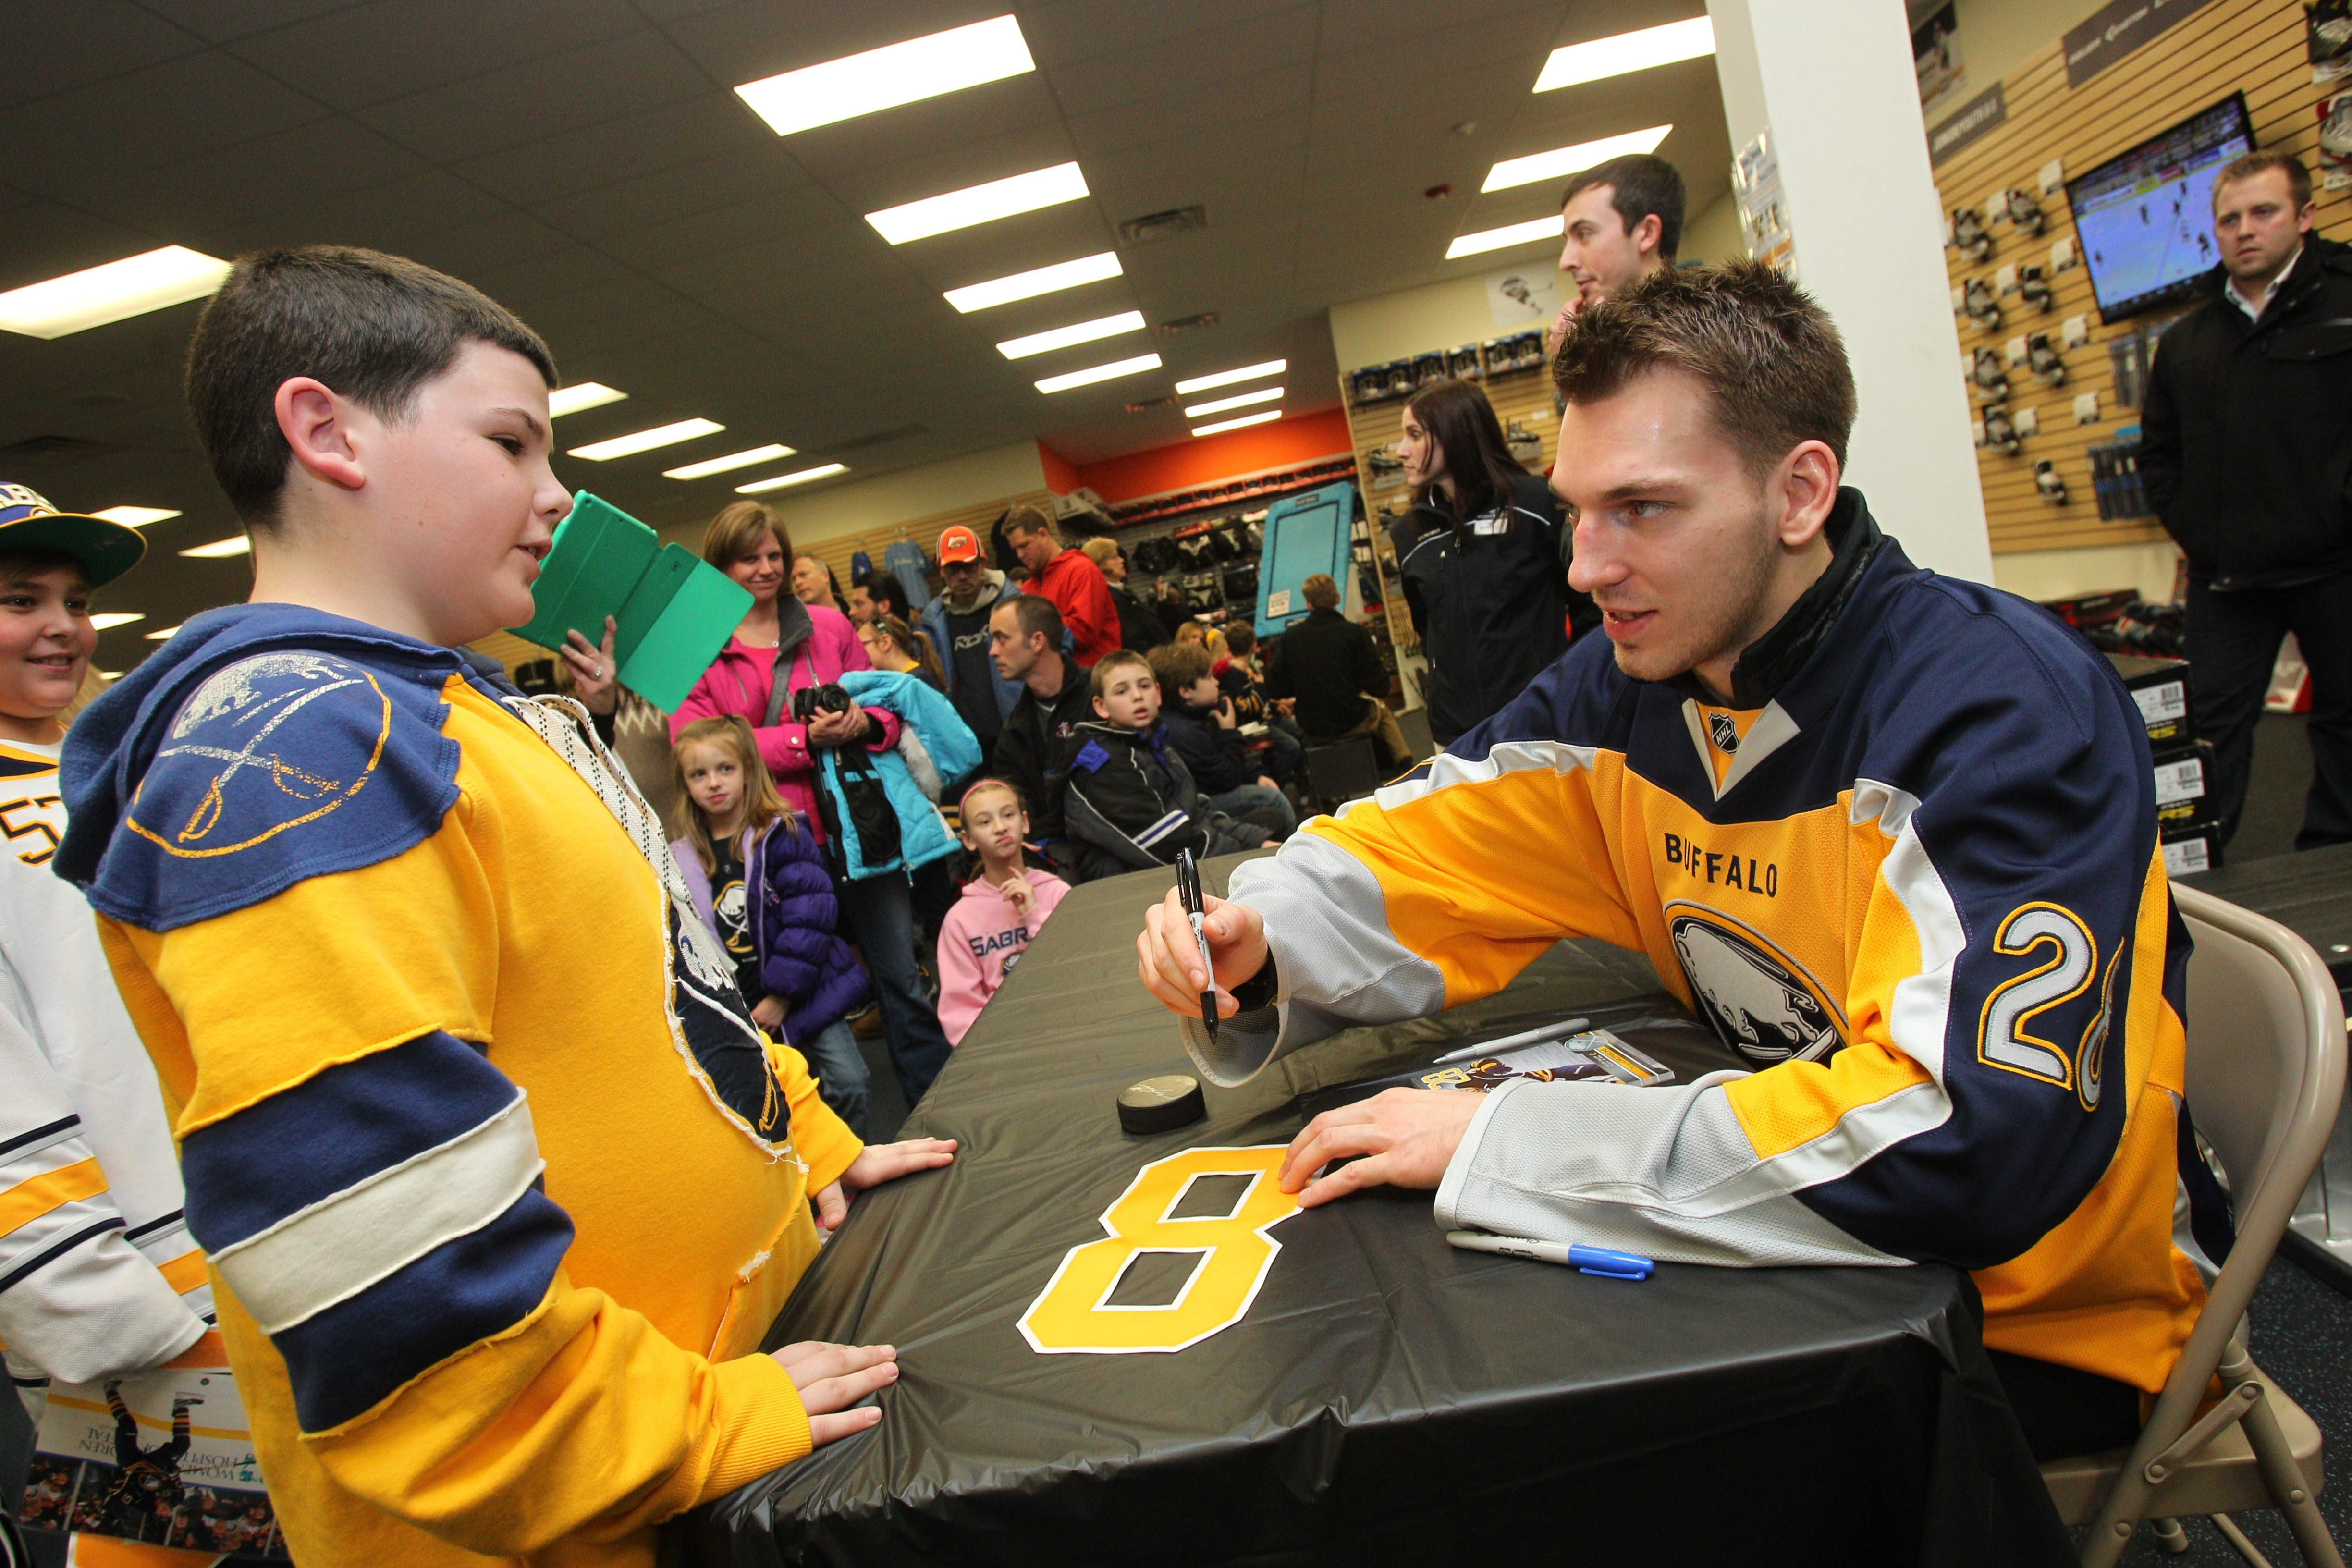 Anthony Aiello, 12, of the Town of Tonawanda, gets an autograph from Buffalo Sabre Zemgus Girgensons at Pure Hockey in Amherst, one of the collection sites for the Good Neighbor Skate Drop-Off.